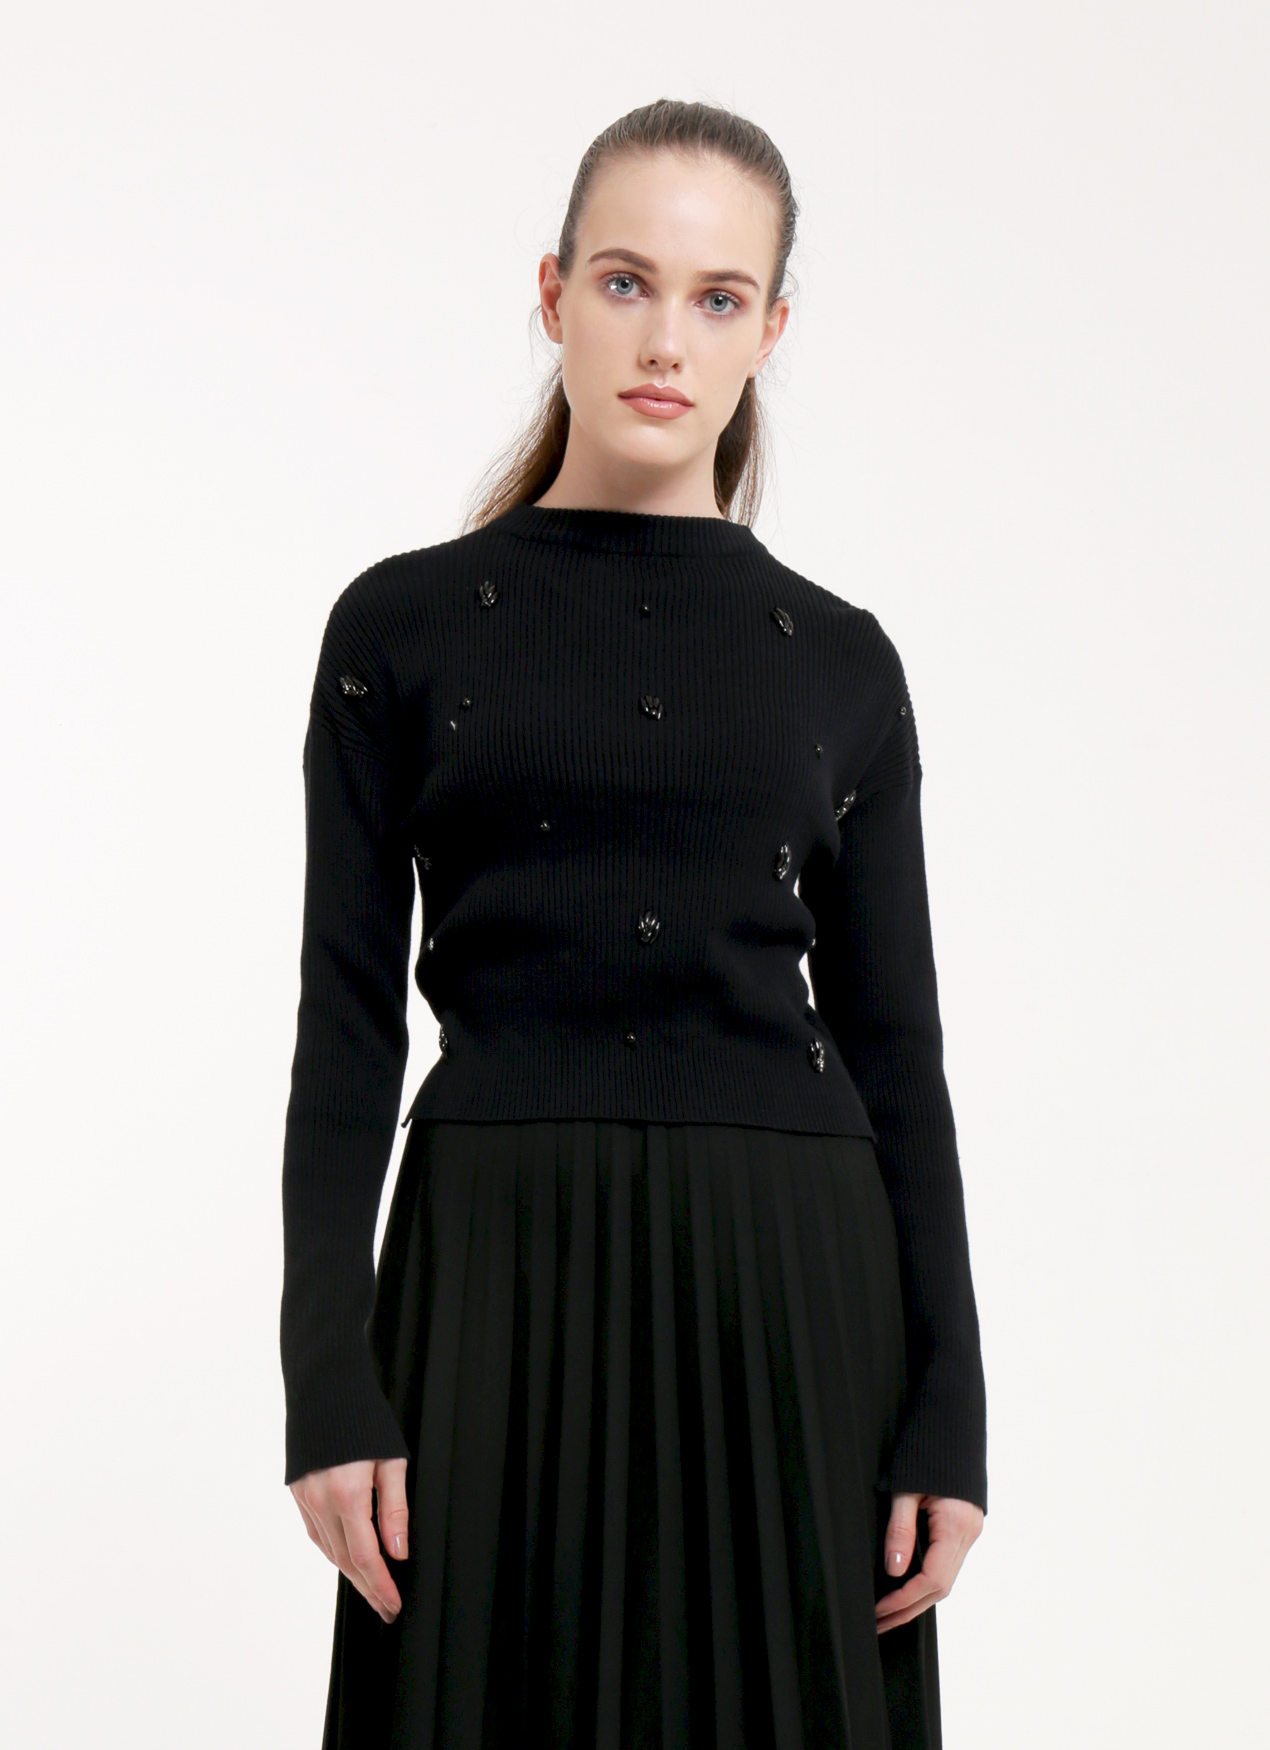 b226258238c Eesome Black Edith Cropped Sweater · Eesome Black Edith Cropped Sweater ...